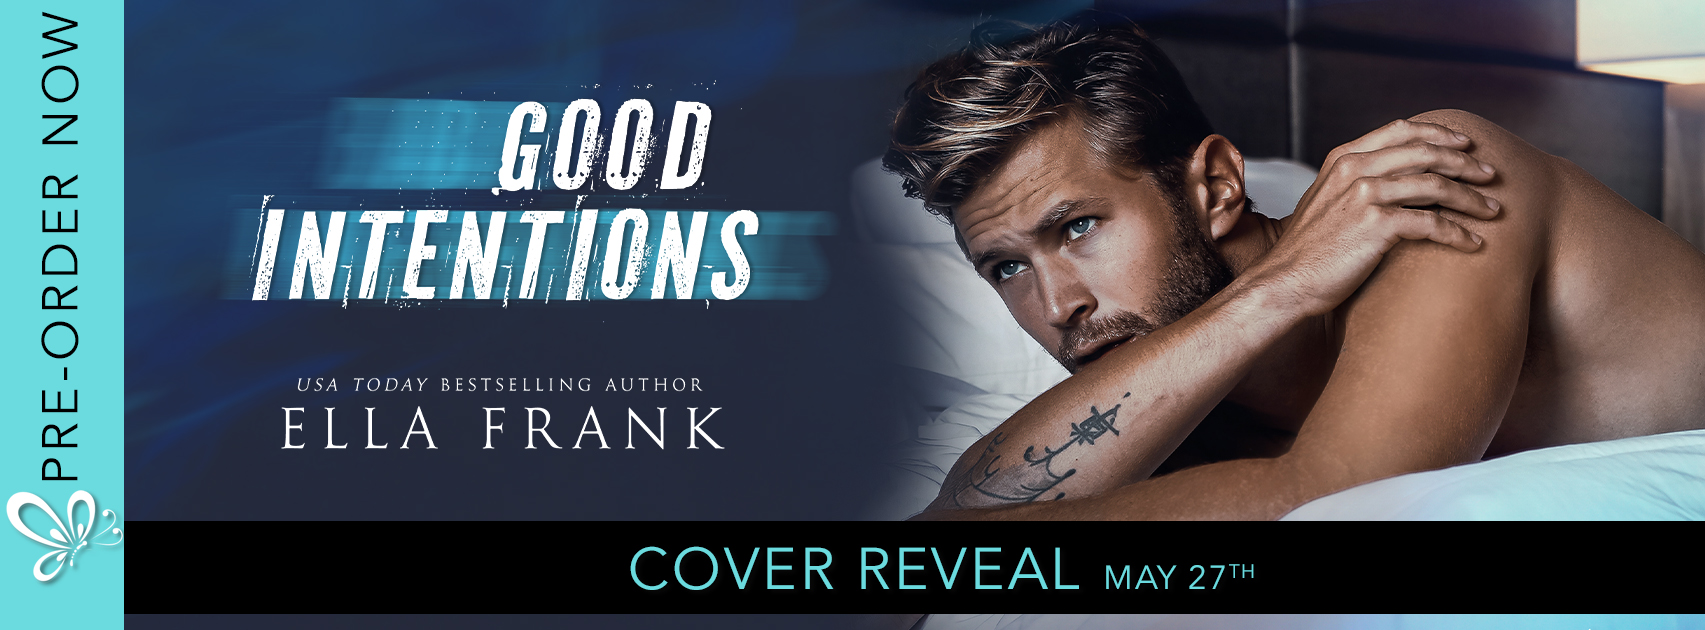 Good Intentions - CR banner